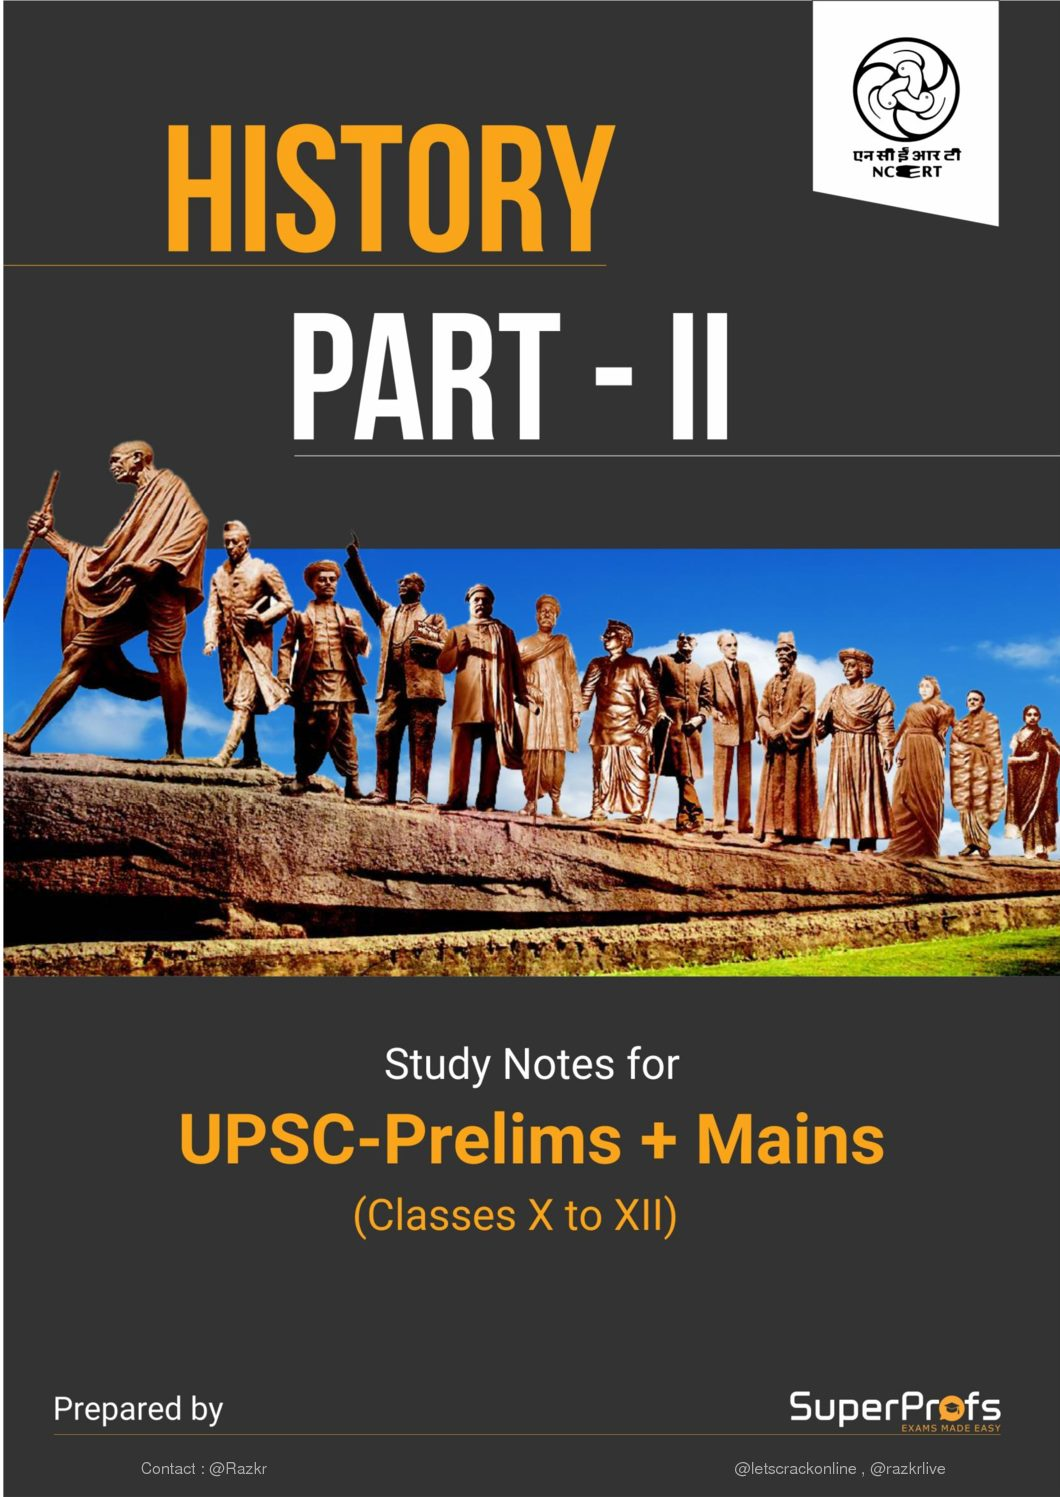 History NCERT Gist 10th+11th+12th in 1 PDF DOWLOAD